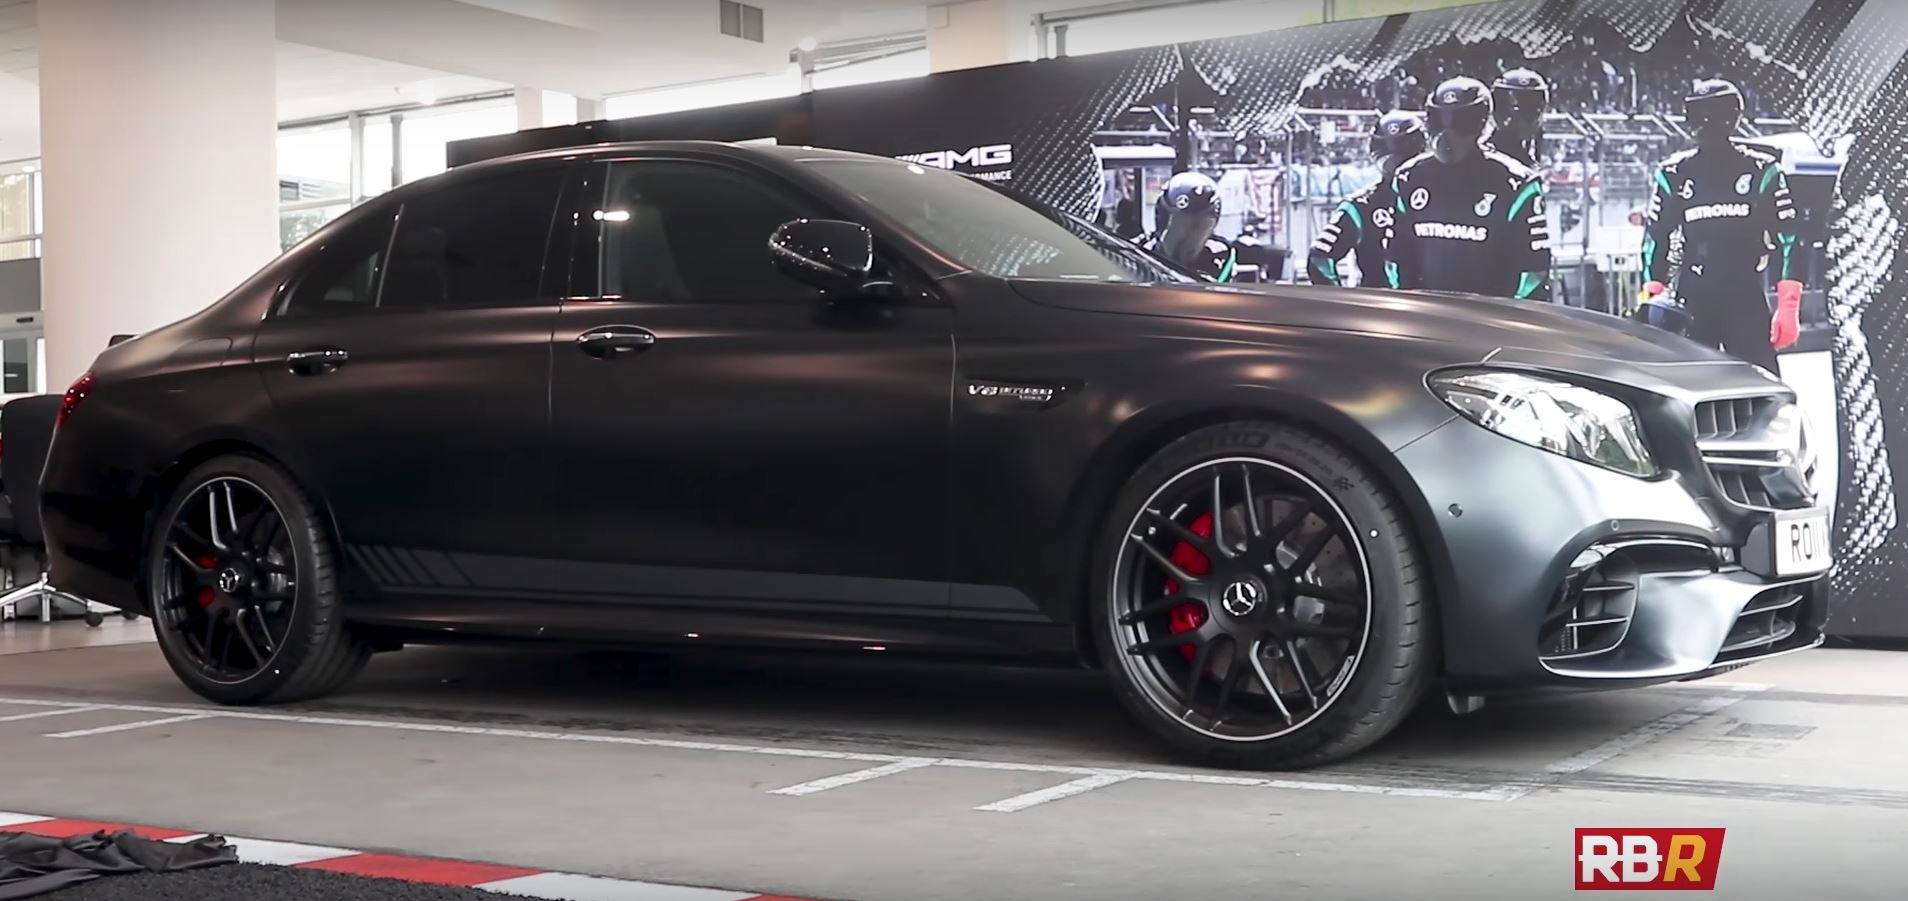 Hardcore AMG Owner Buys New E63 Edition 1, Organizes Rev Battle with